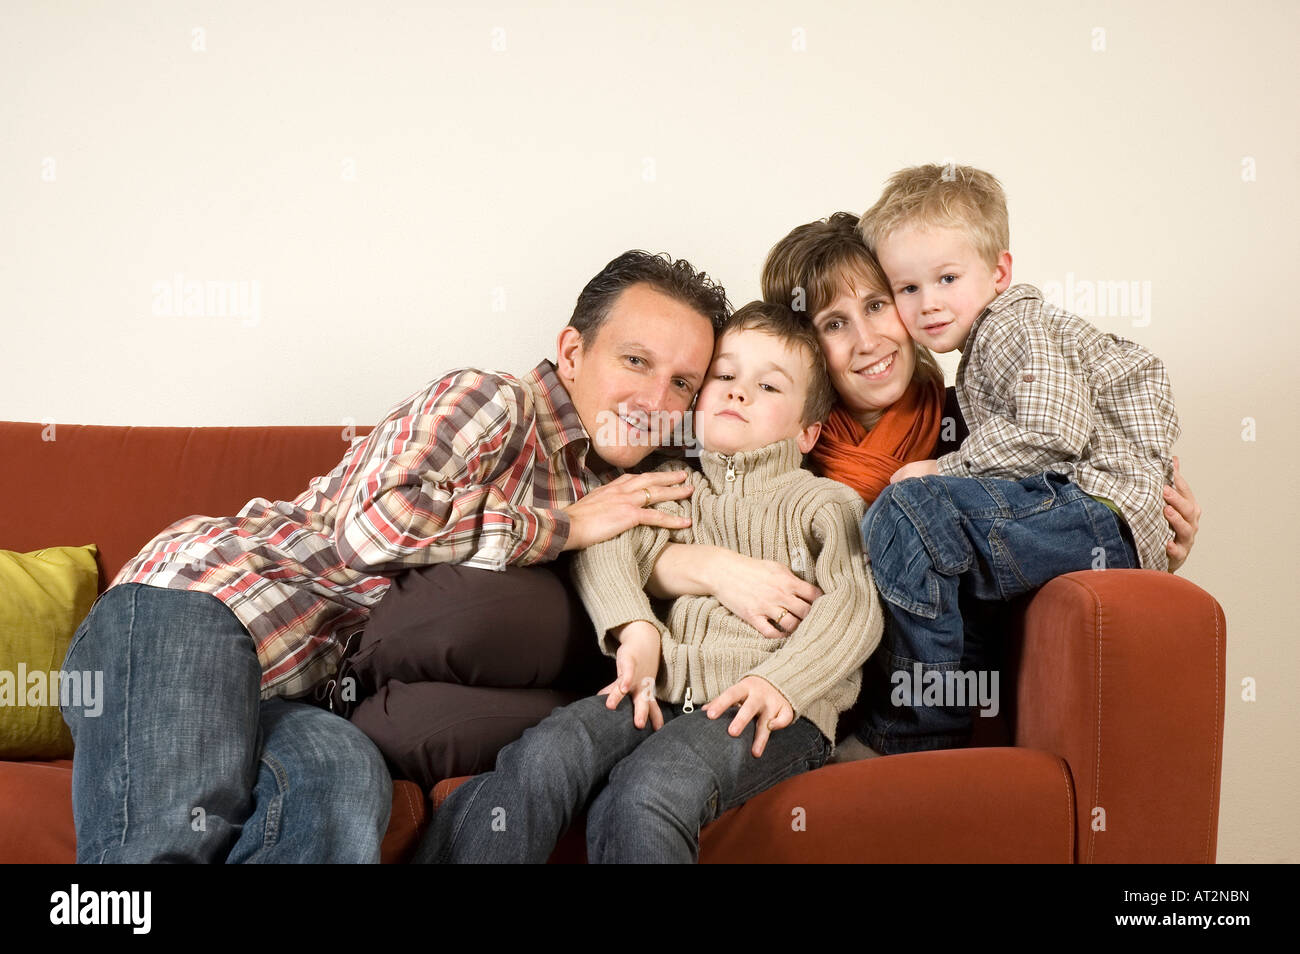 Nice family picture sitting together on a couch - Stock Image